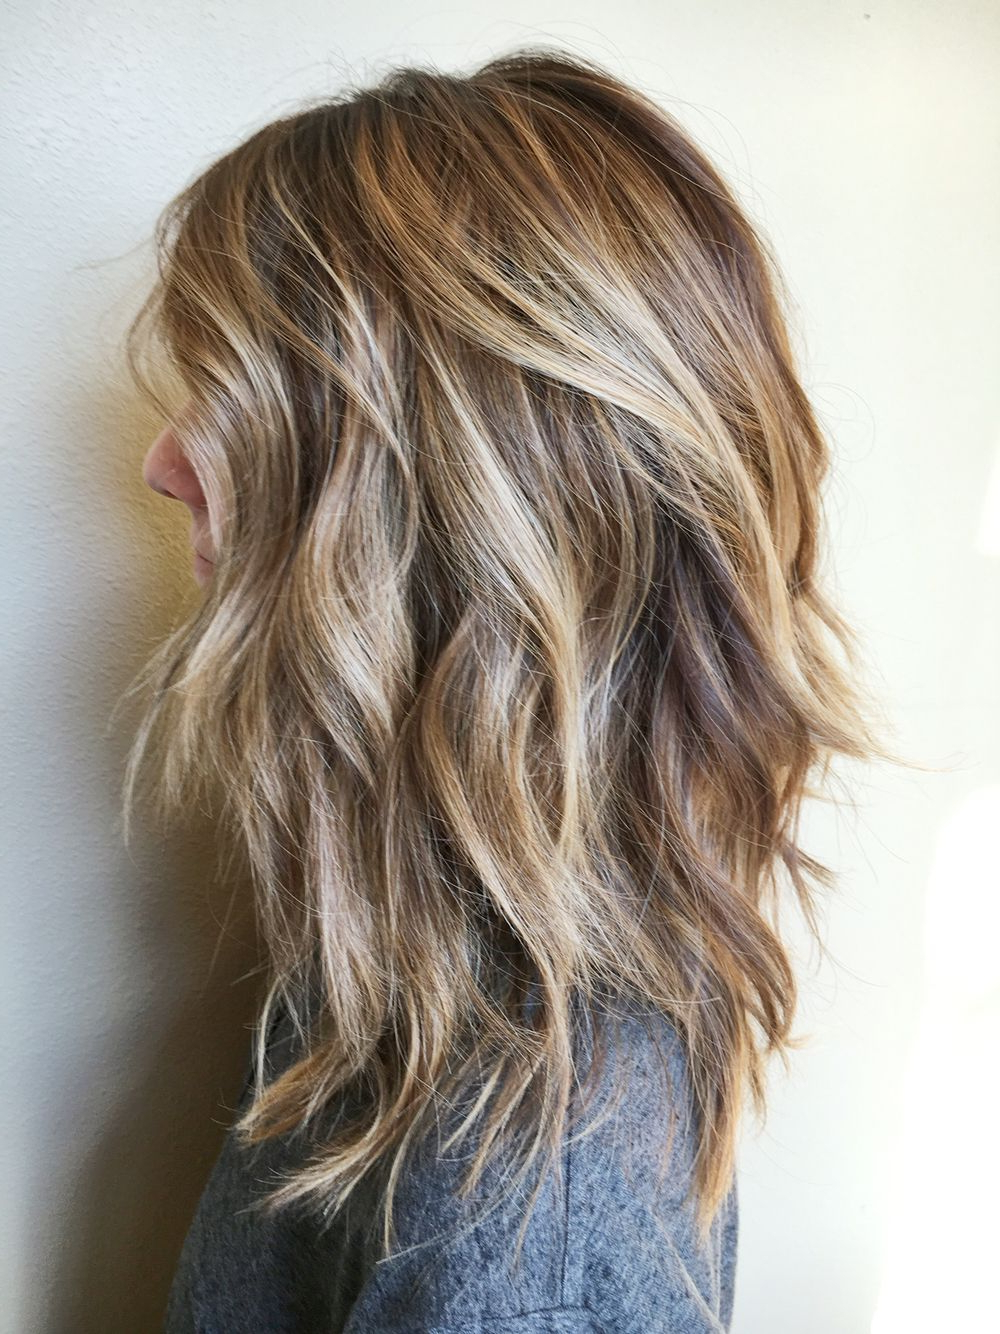 Astaciachristensonhair #hairbyastacia #balayage Throughout Recent Bedhead Layers For Long Hairstyles (Gallery 16 of 20)